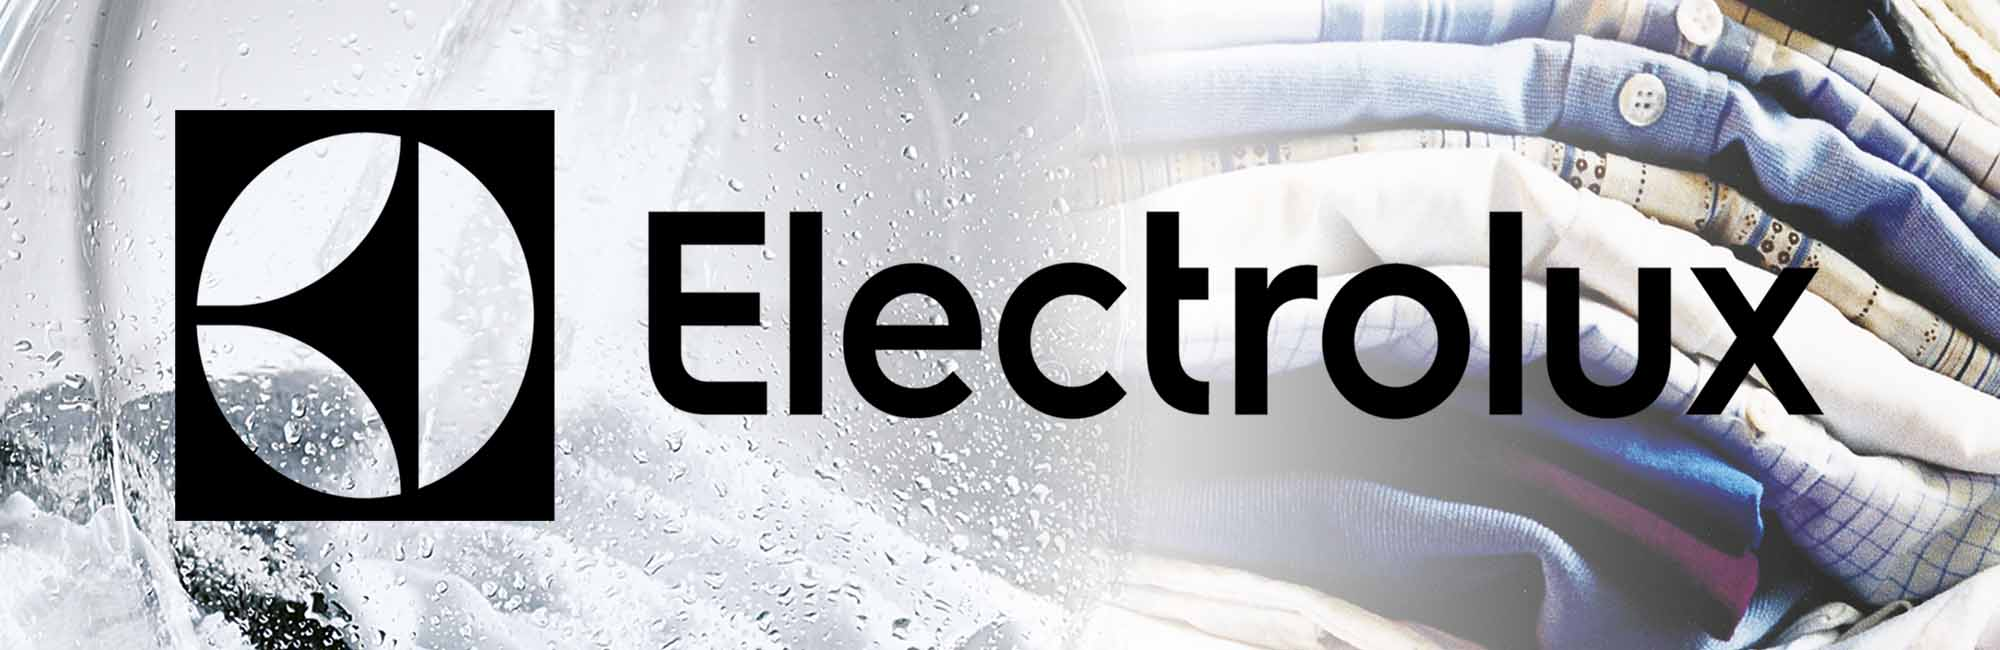 Electrolux-huolto